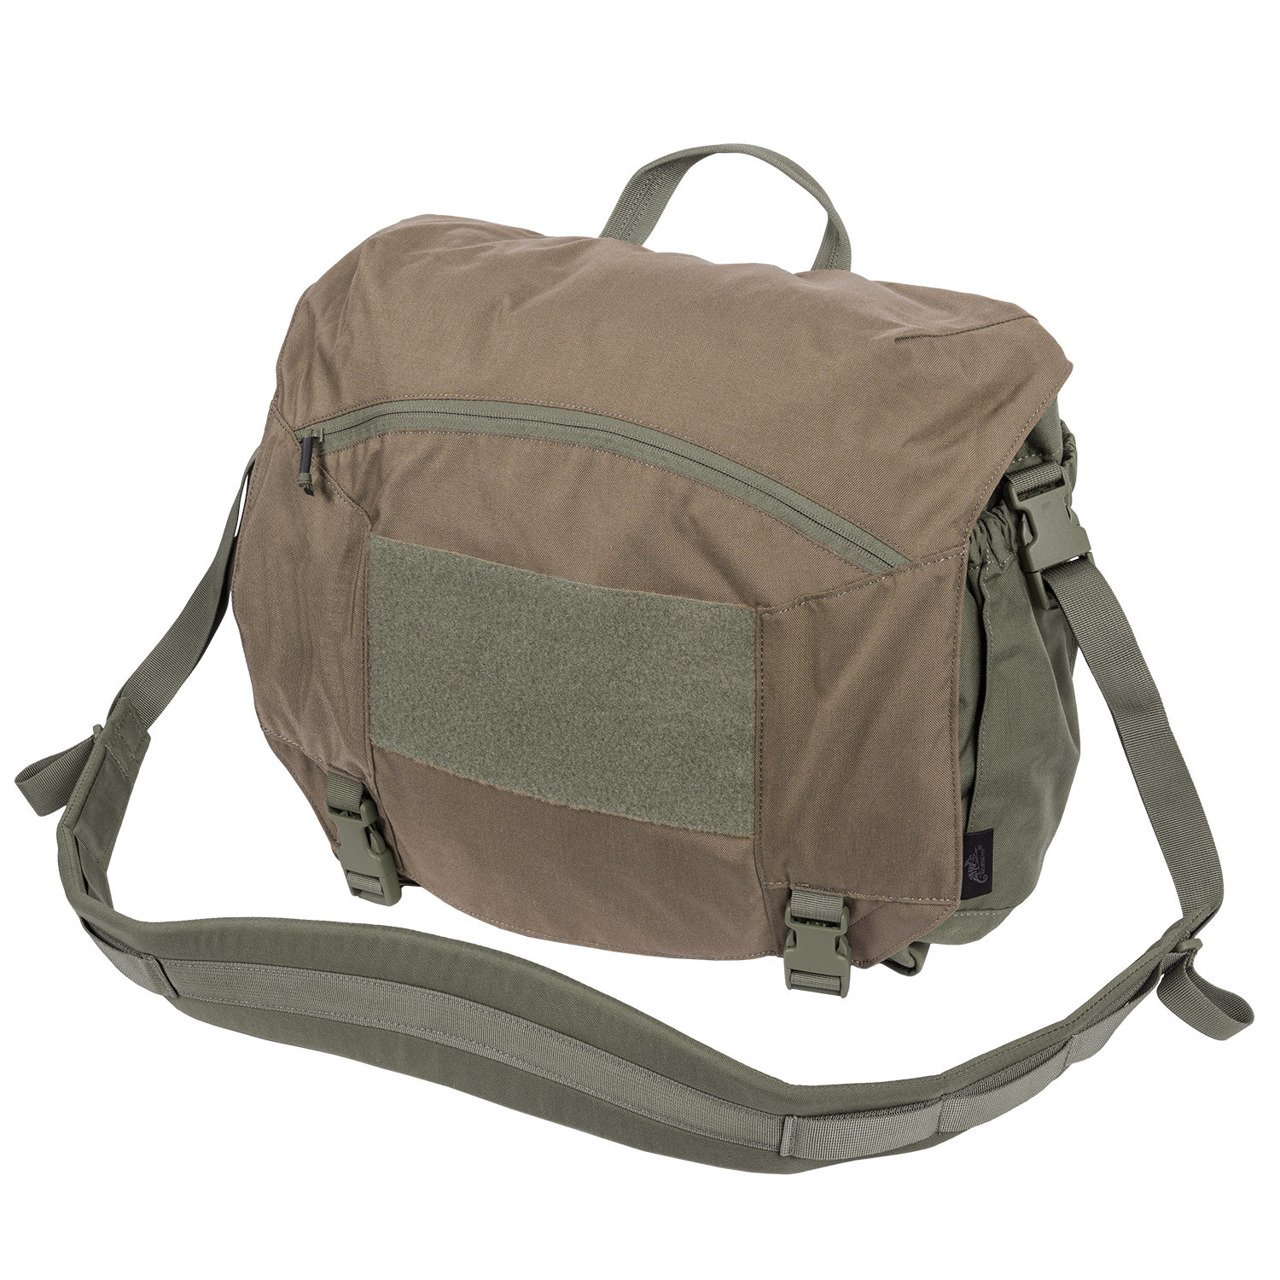 816795b609b URBAN COURIER BAG LARGE® - CORDURA® - COYOTE green 2 green 2 ...